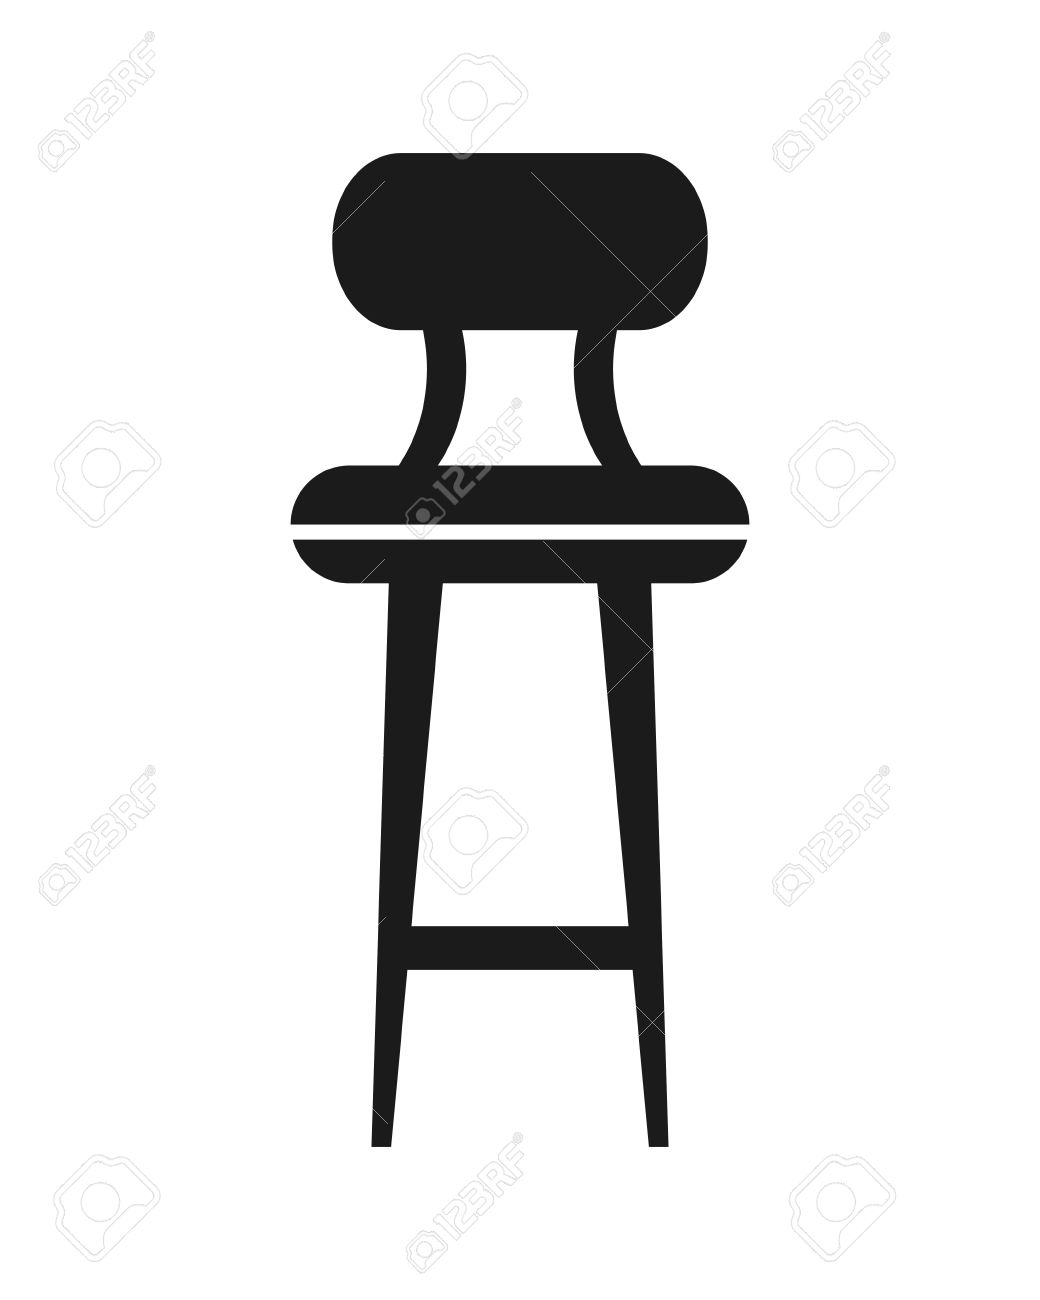 Flat Design Bar Chair Icon Vector Illustration Royalty Free Cliparts ...